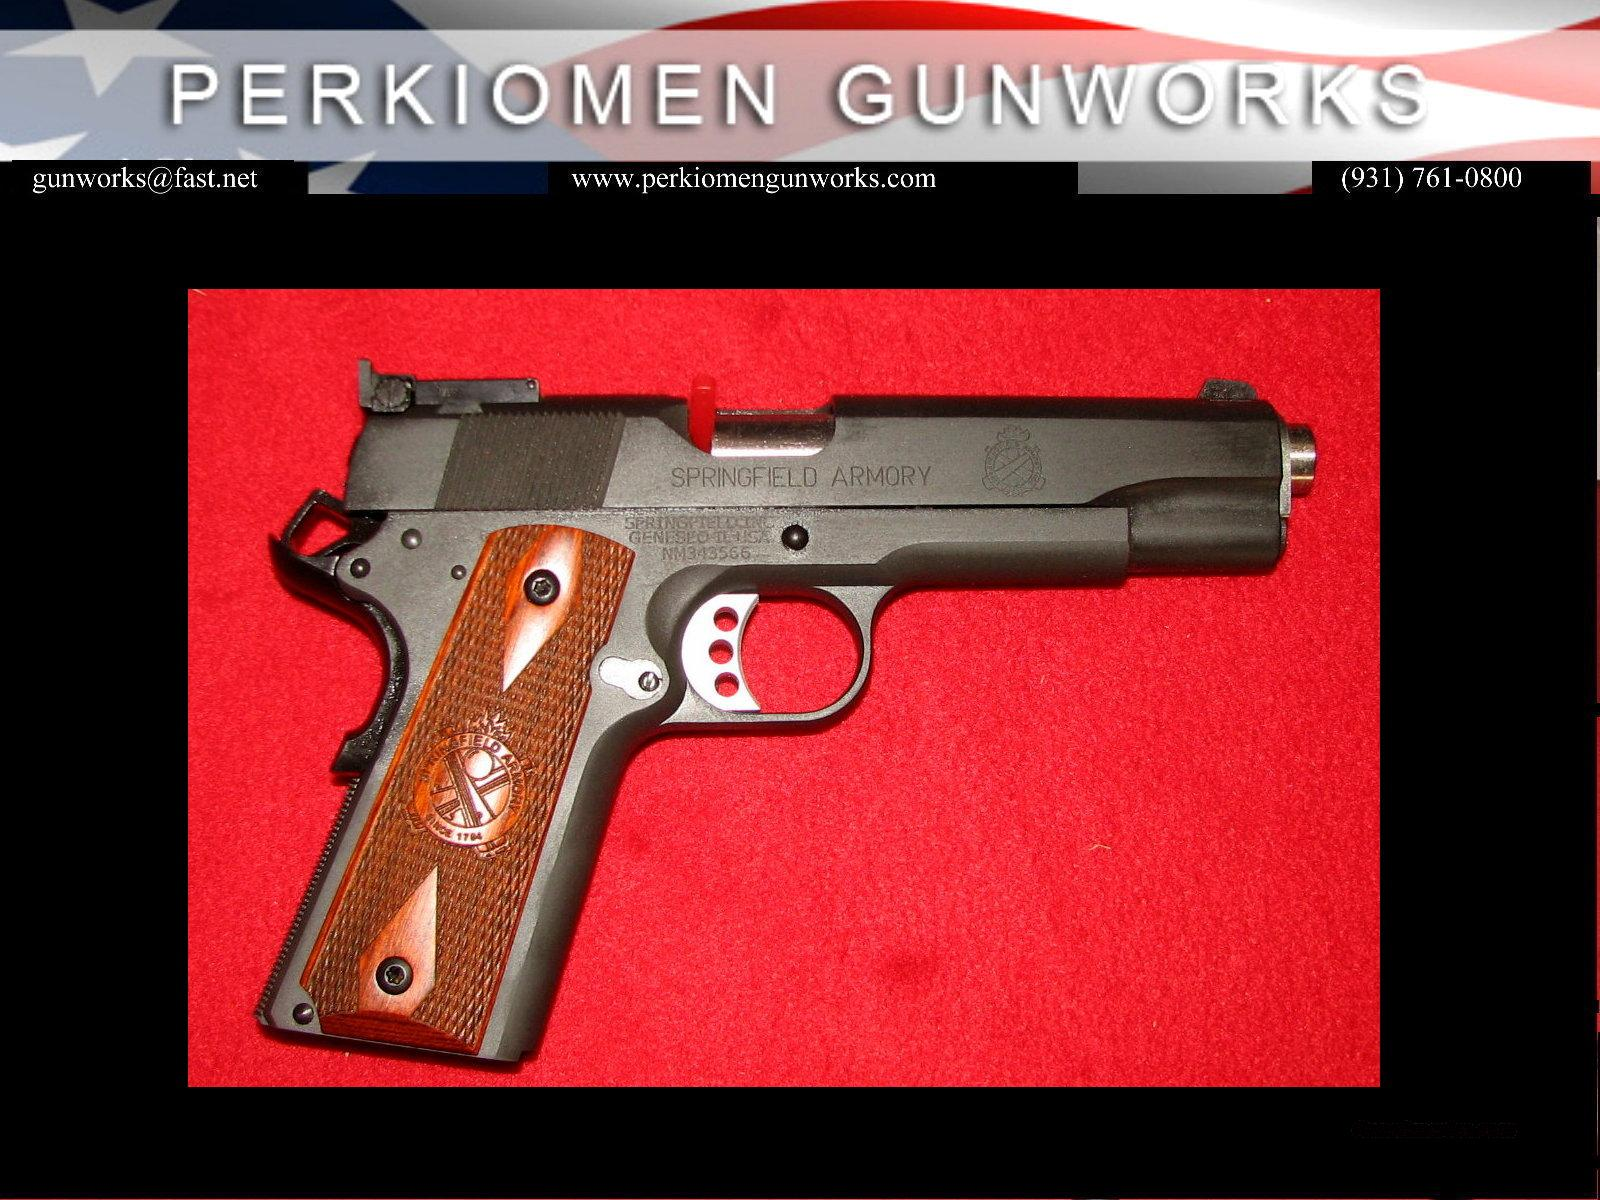 1911 Range Officer Package, 45acp, New in Box  Guns > Pistols > Springfield Armory Pistols > 1911 Type